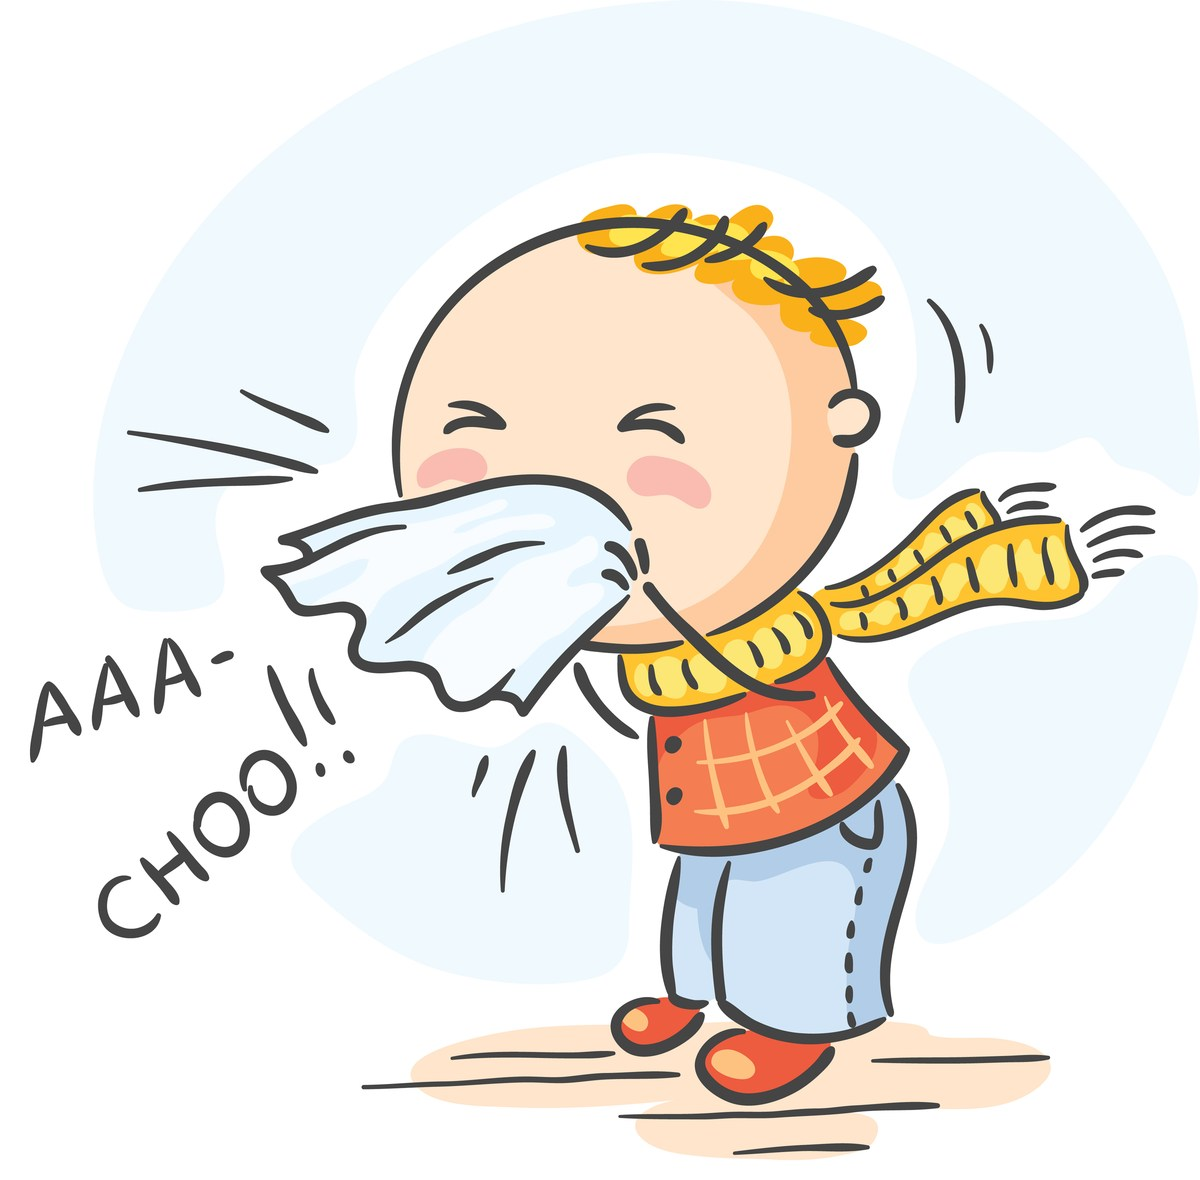 Free Office Flu Cliparts, Download Free Clip Art, Free Clip.